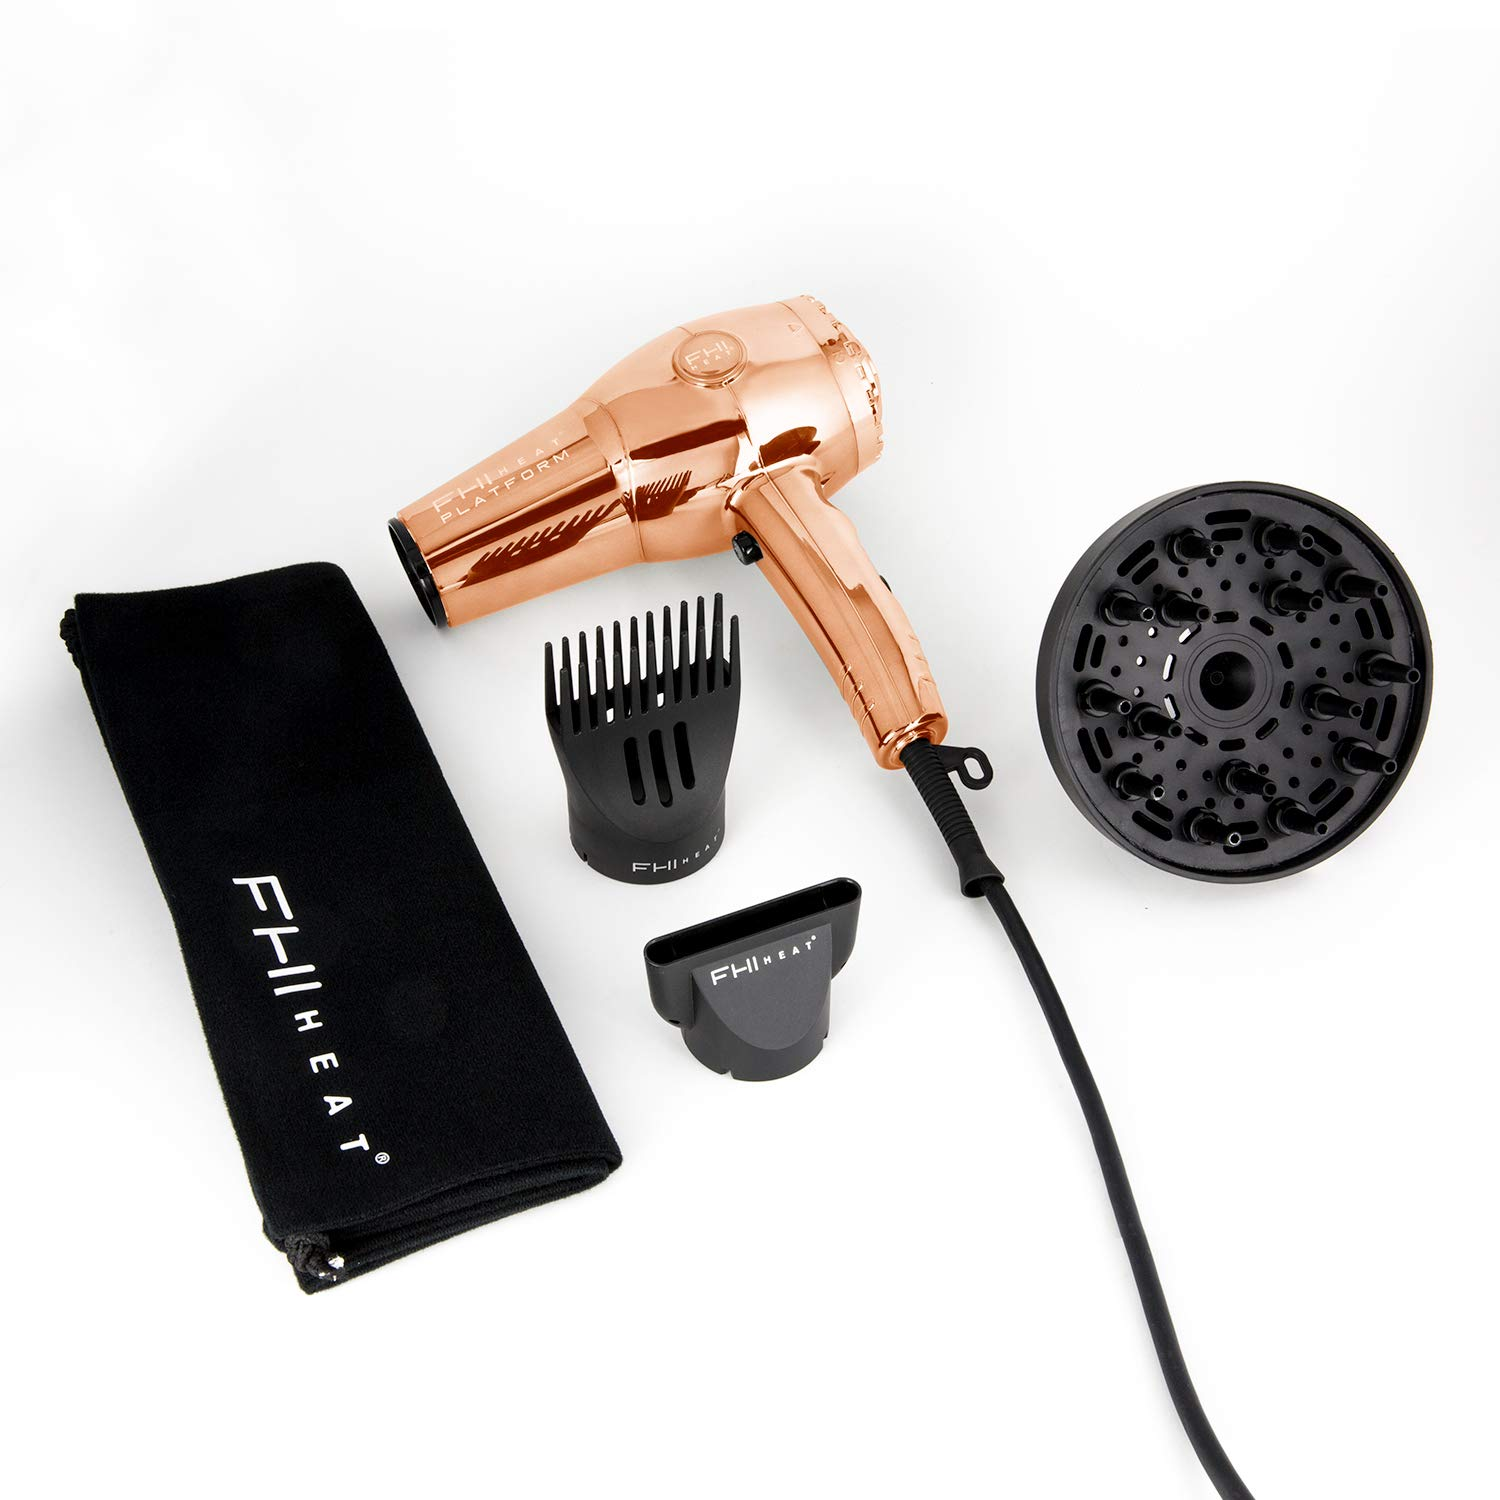 FHI HEAT Platform Nano Lite Pro 1900 Turbo Tourmaline Ceramic Hair Dryer, Rose Gold, Chrome Edition